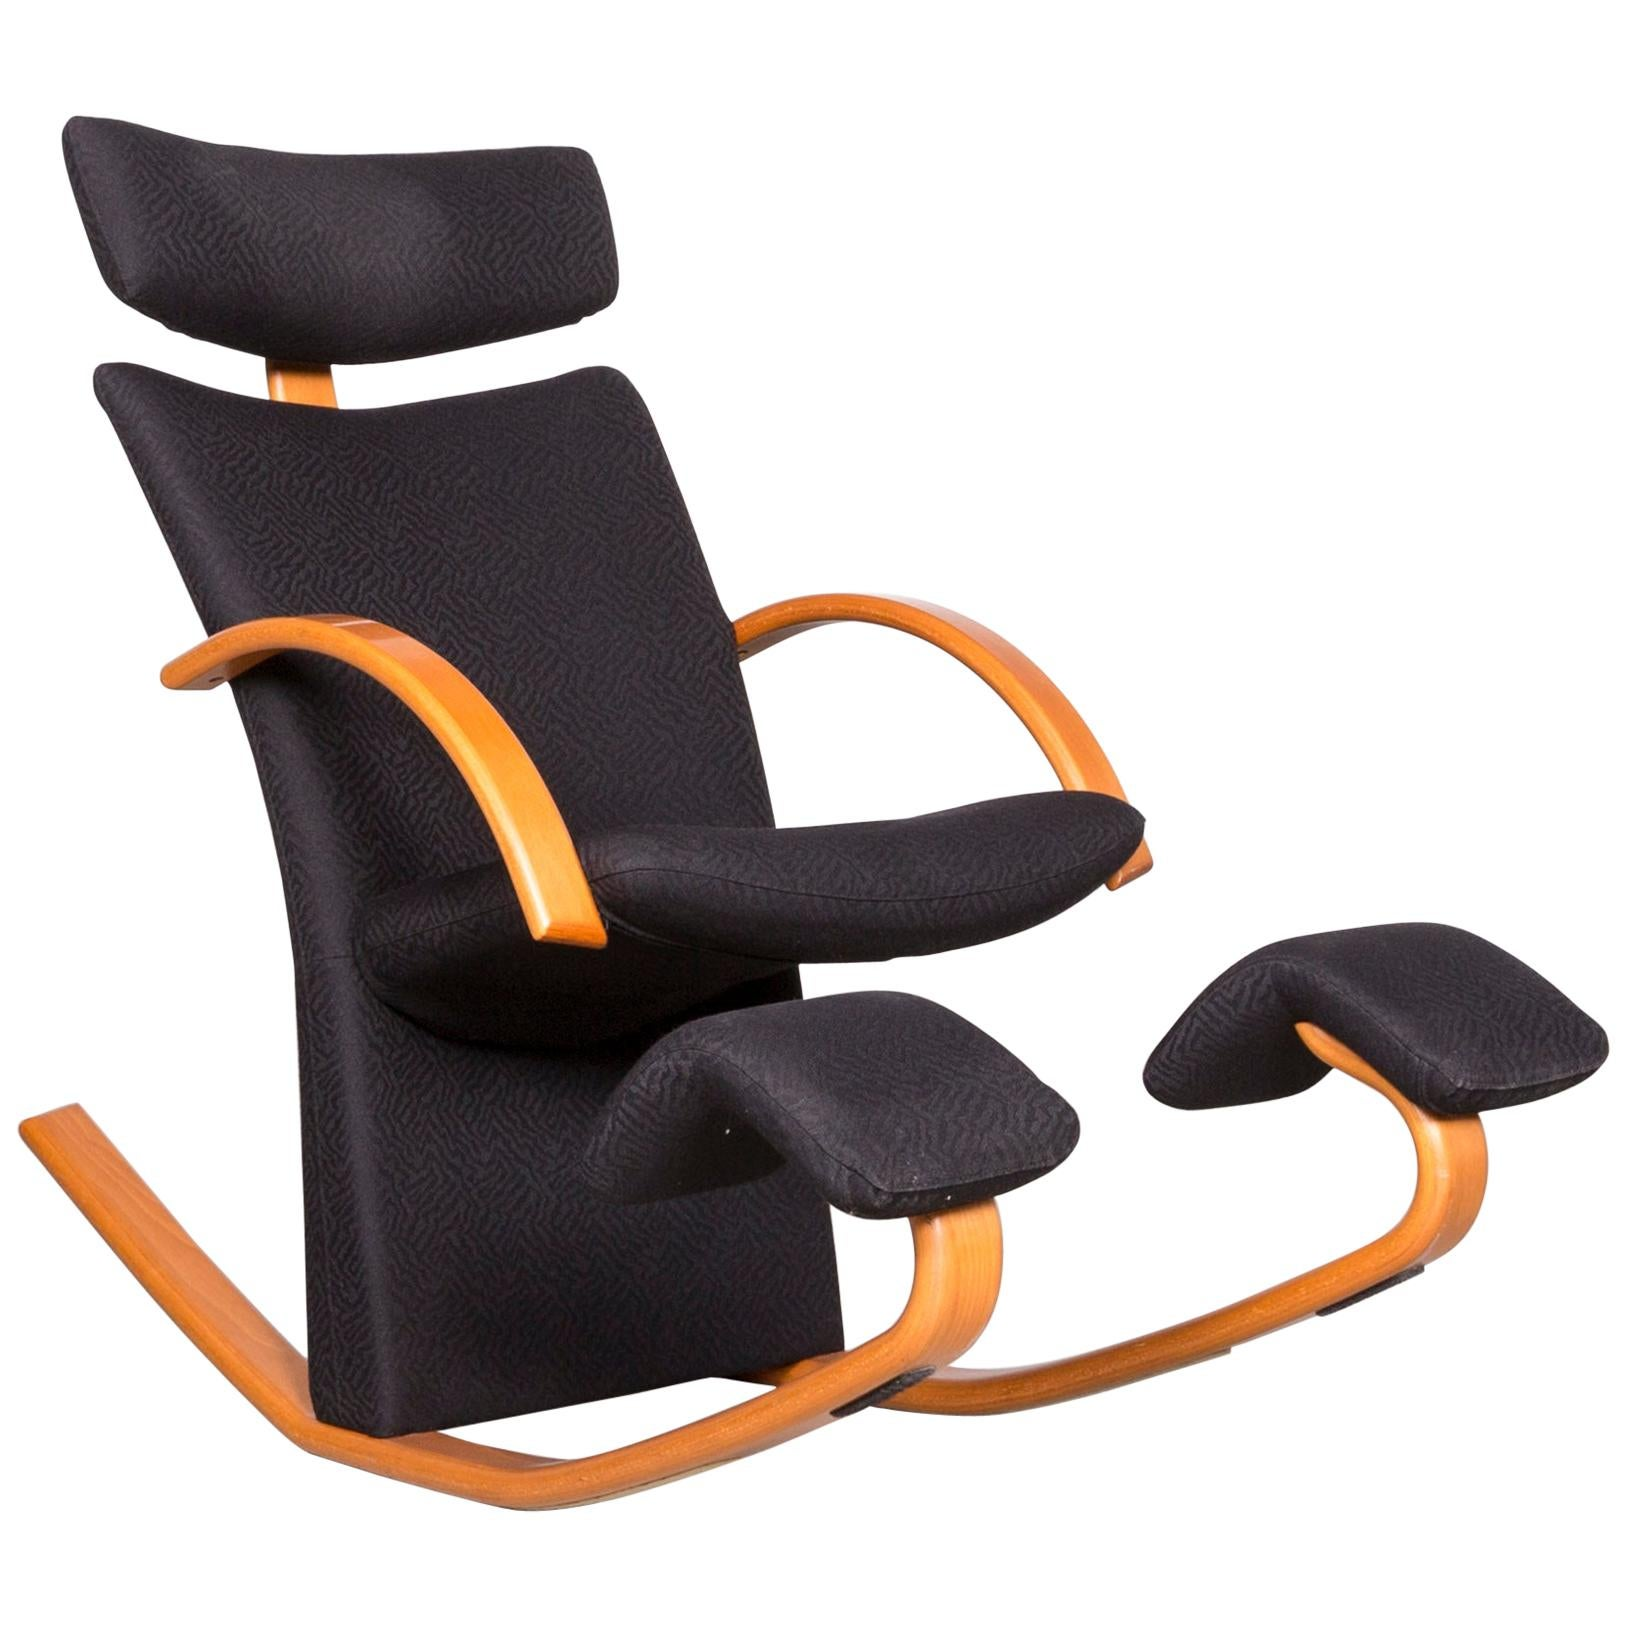 Stokke Gravity Balans Designer Fabric Armchair Black Rocking Chair By Peter